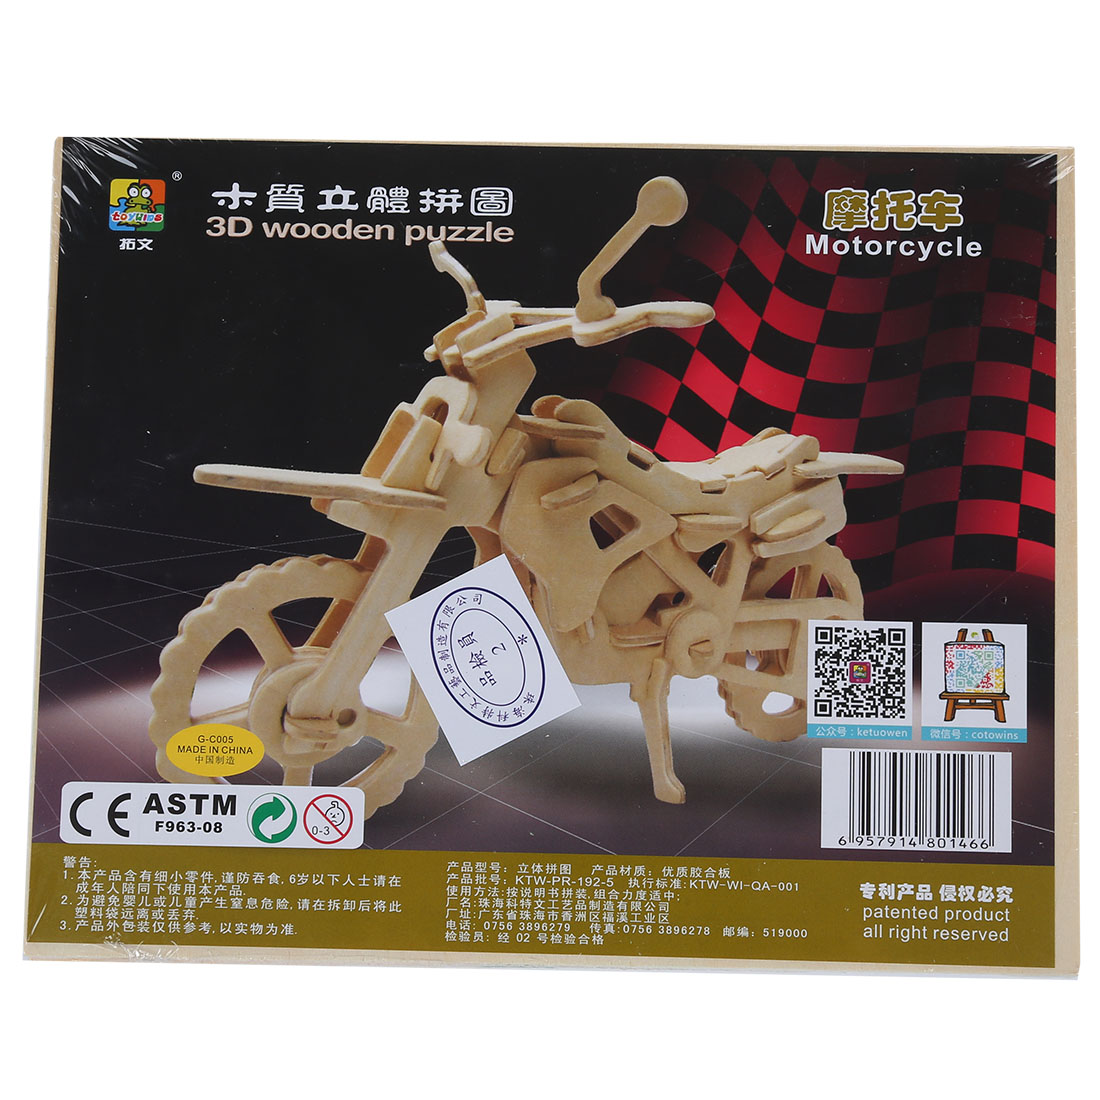 KEOL Best Sale Cross Country Motorcycle Woodcraft Construction Kit Toy